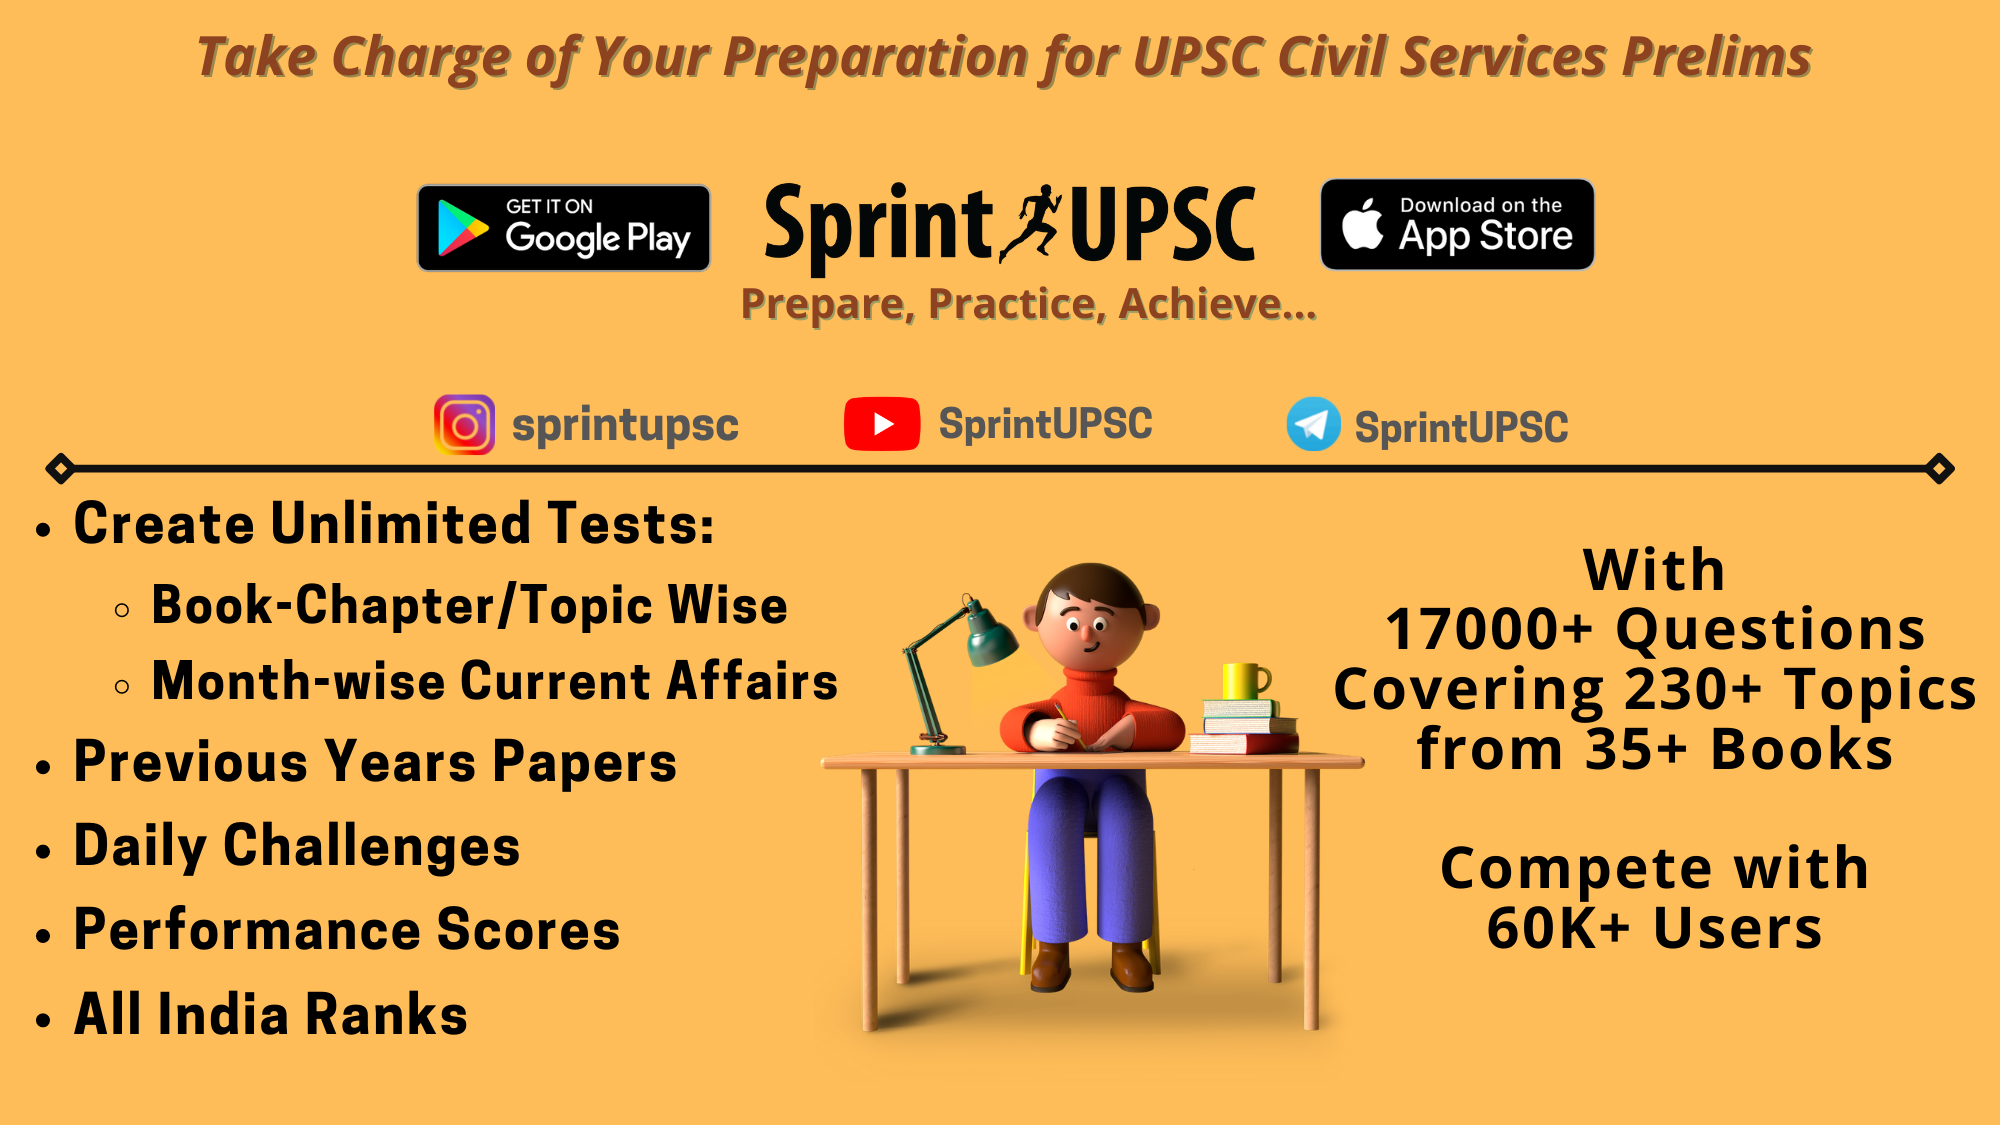 Staying Focused and Managing Time During UPSC Exam Preparation